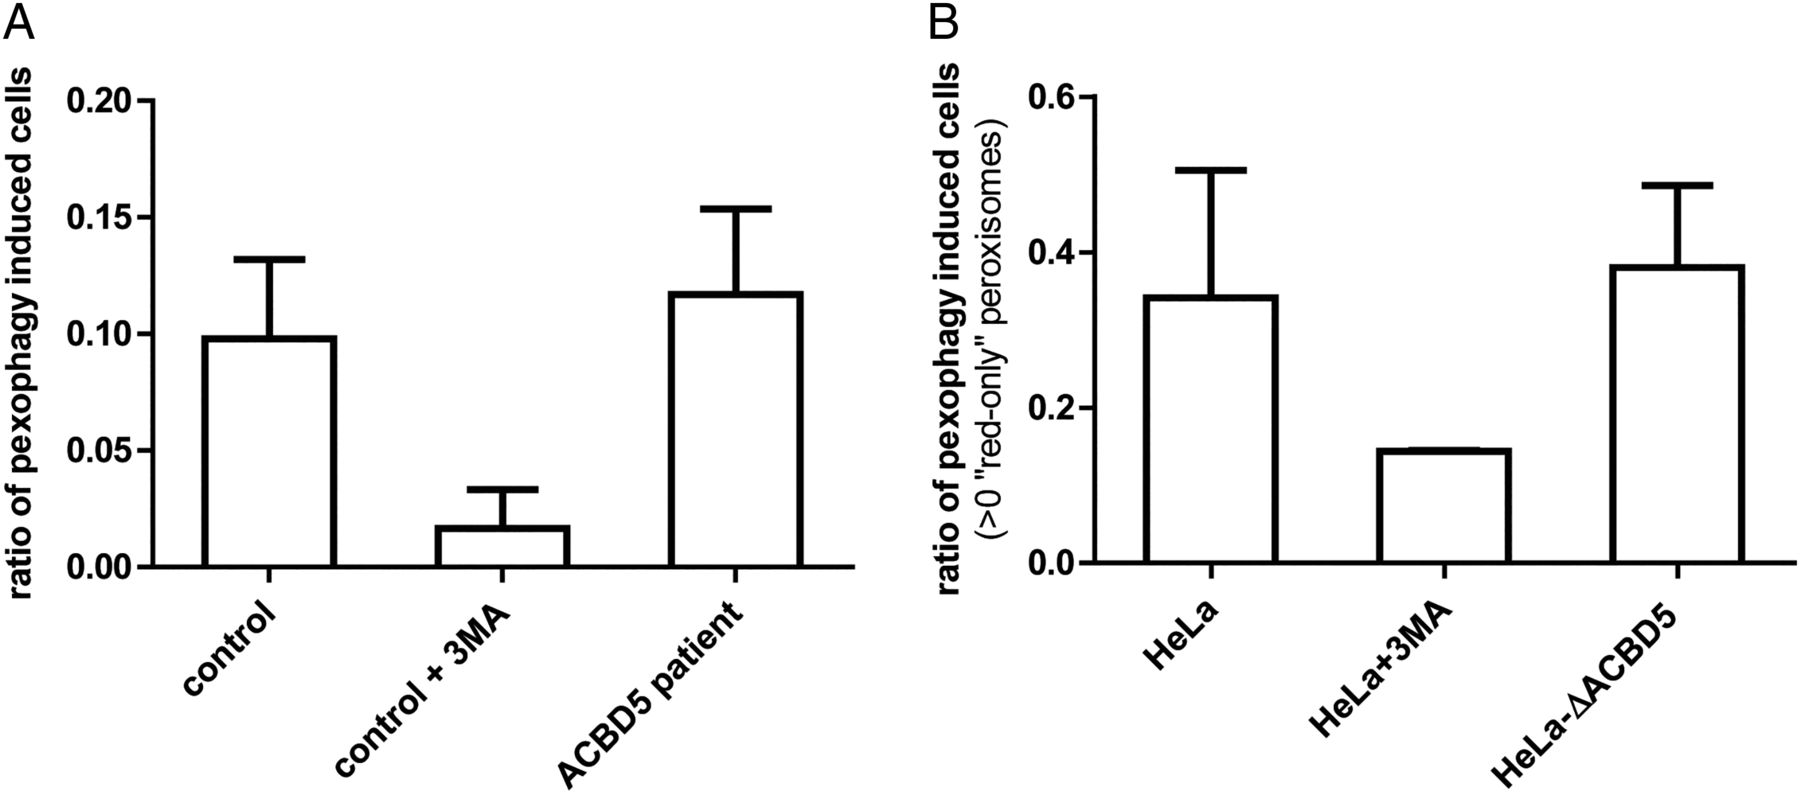 ACBD5 deficiency causes a defect in peroxisomal very long